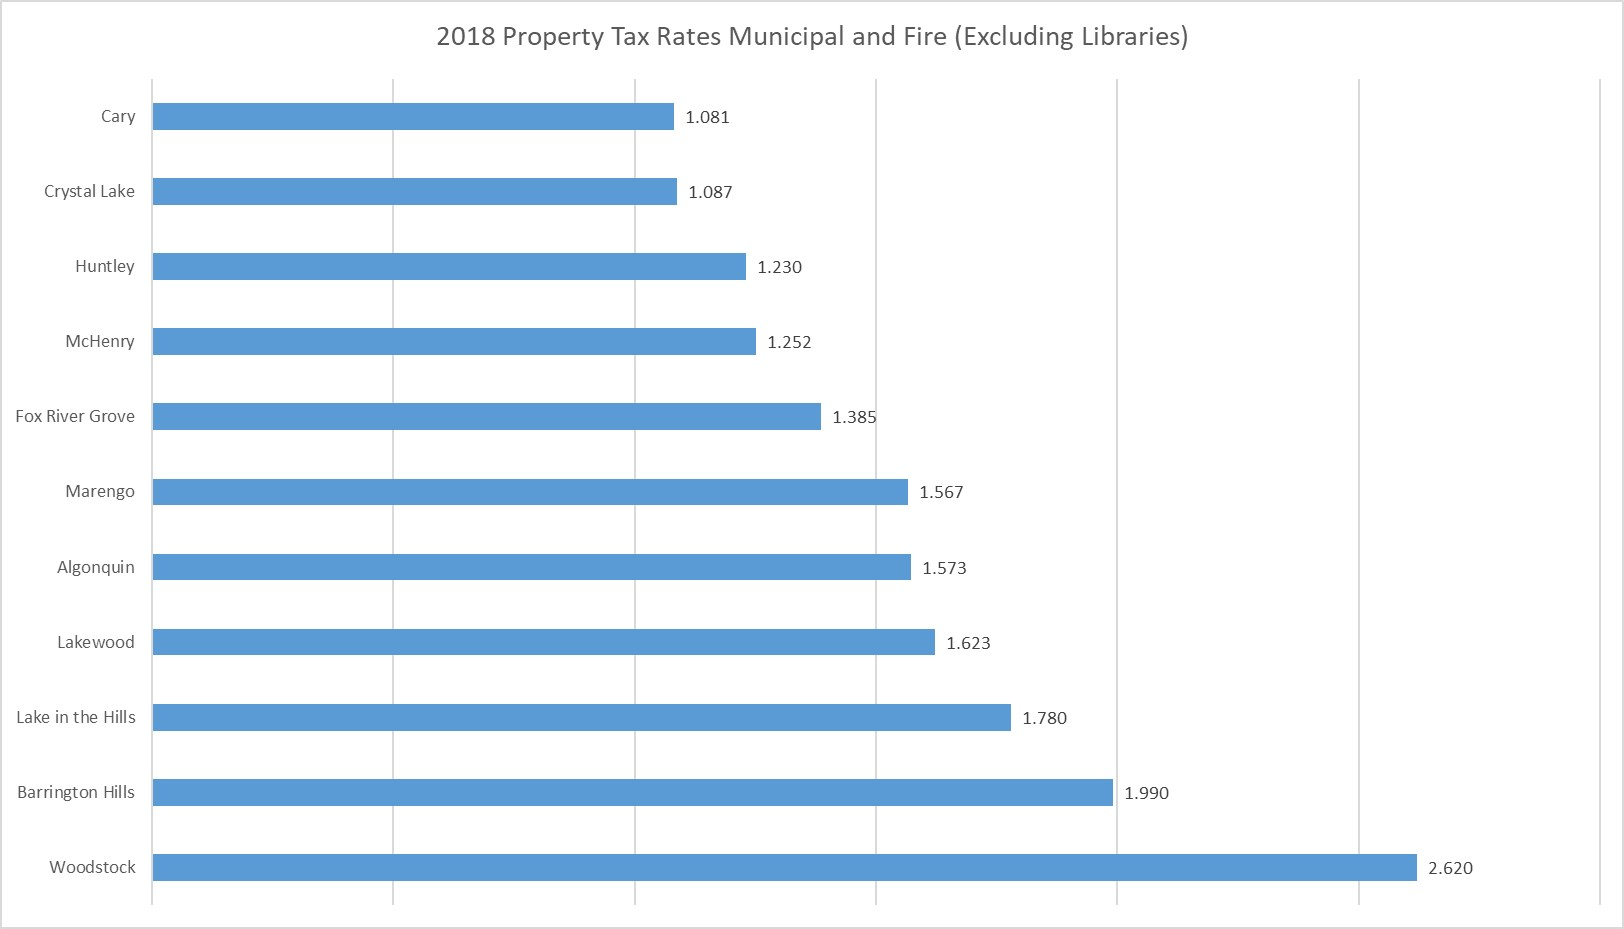 2018 Property Tax Rates